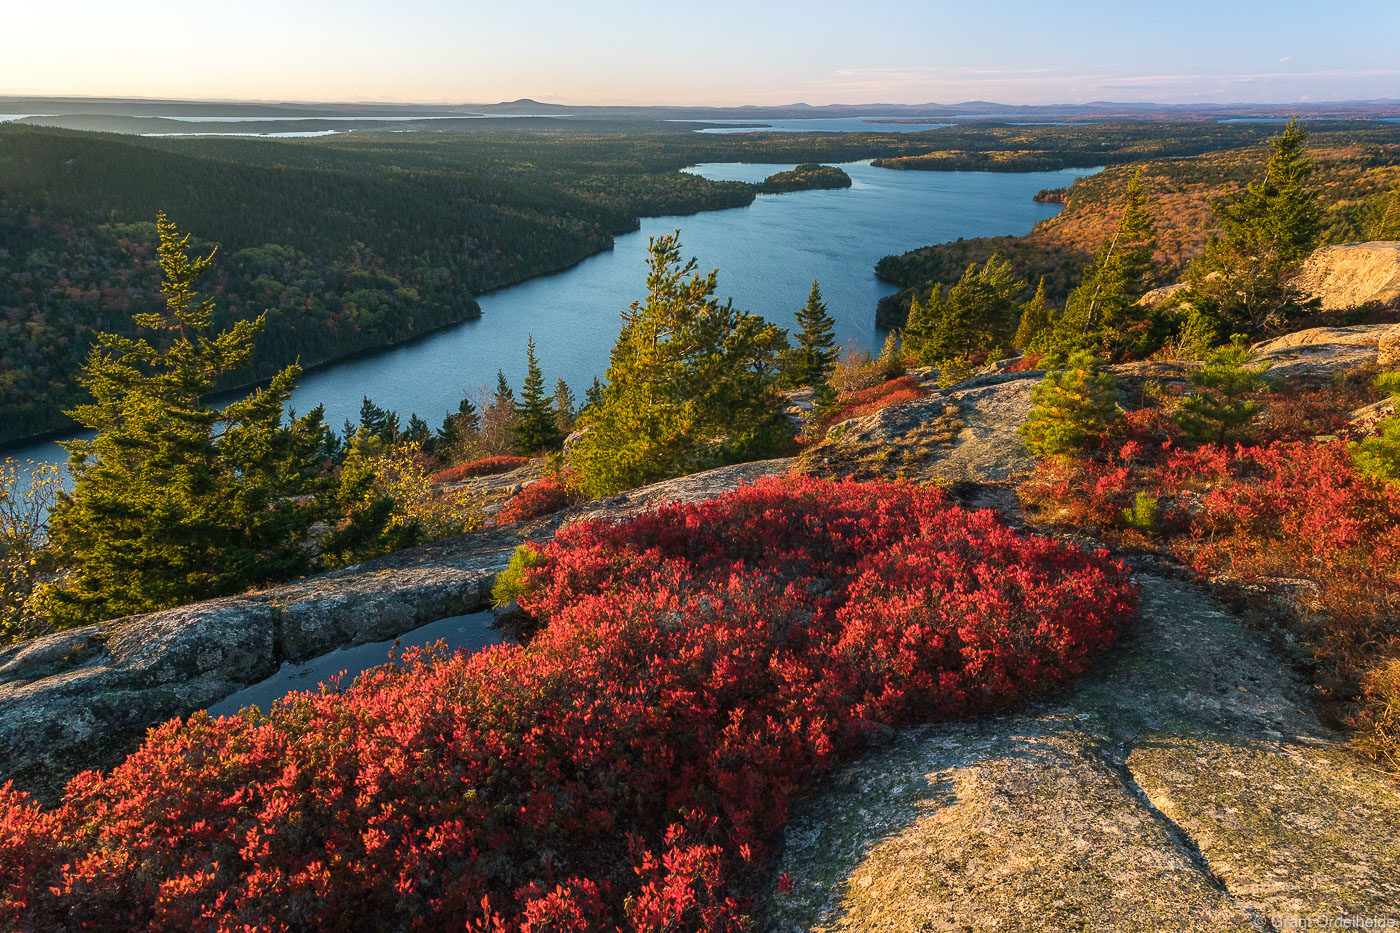 Autumn foliage at the summit of Beech Mountain in Acadia National Park.